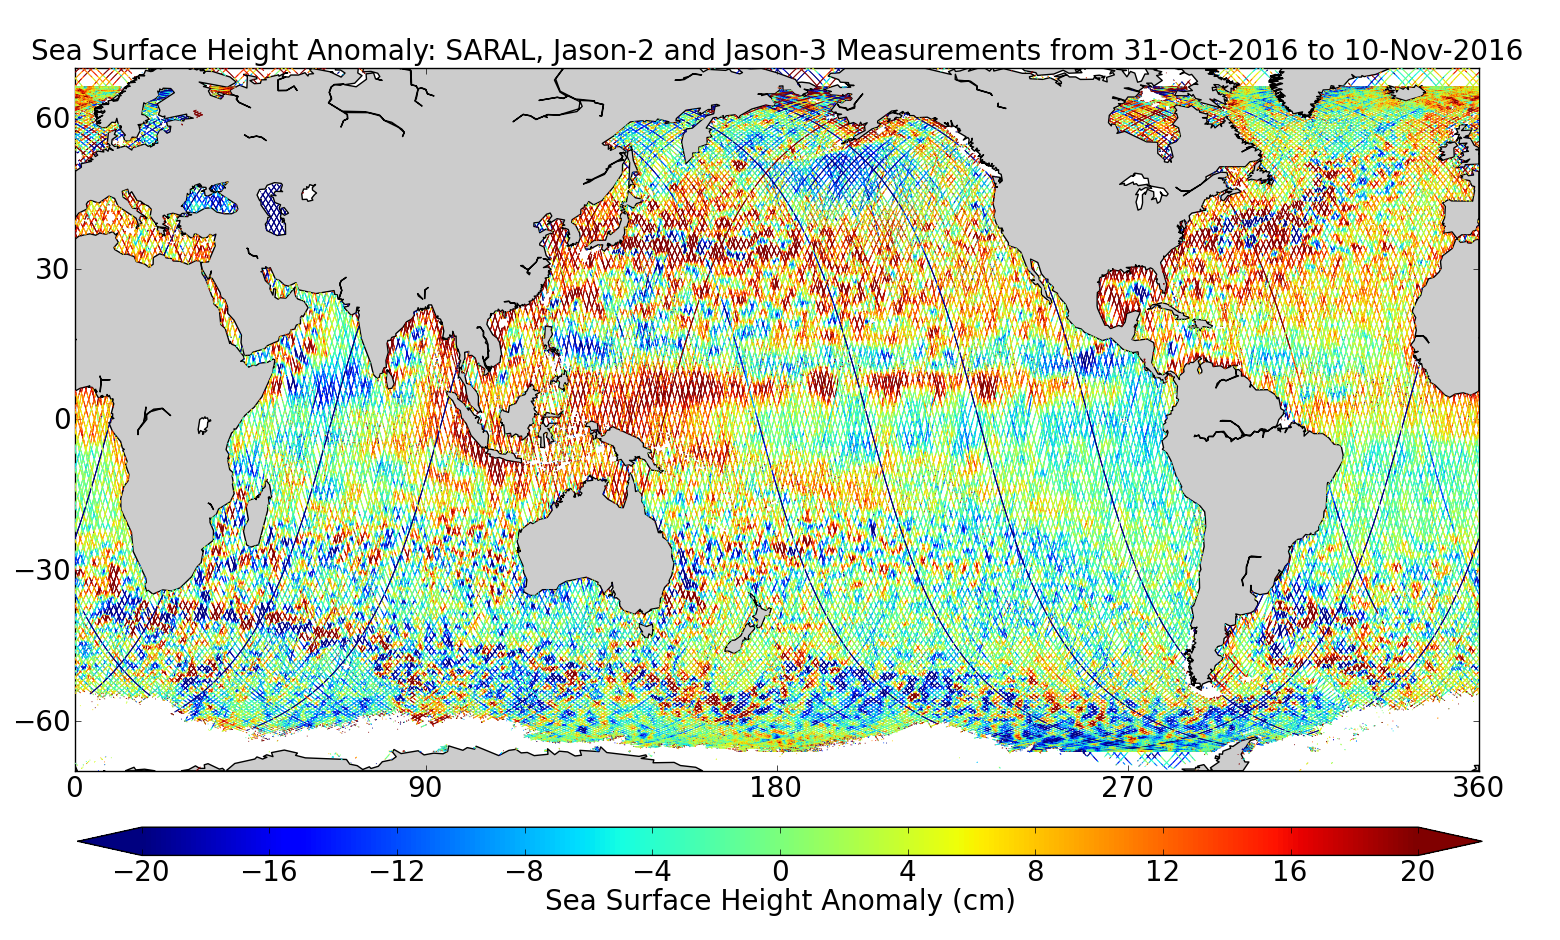 Sea Surface Height Anomaly: SARAL, Jason-2 and Jason-3 Measurements from 31-Oct-2016 to 10-Nov-2016